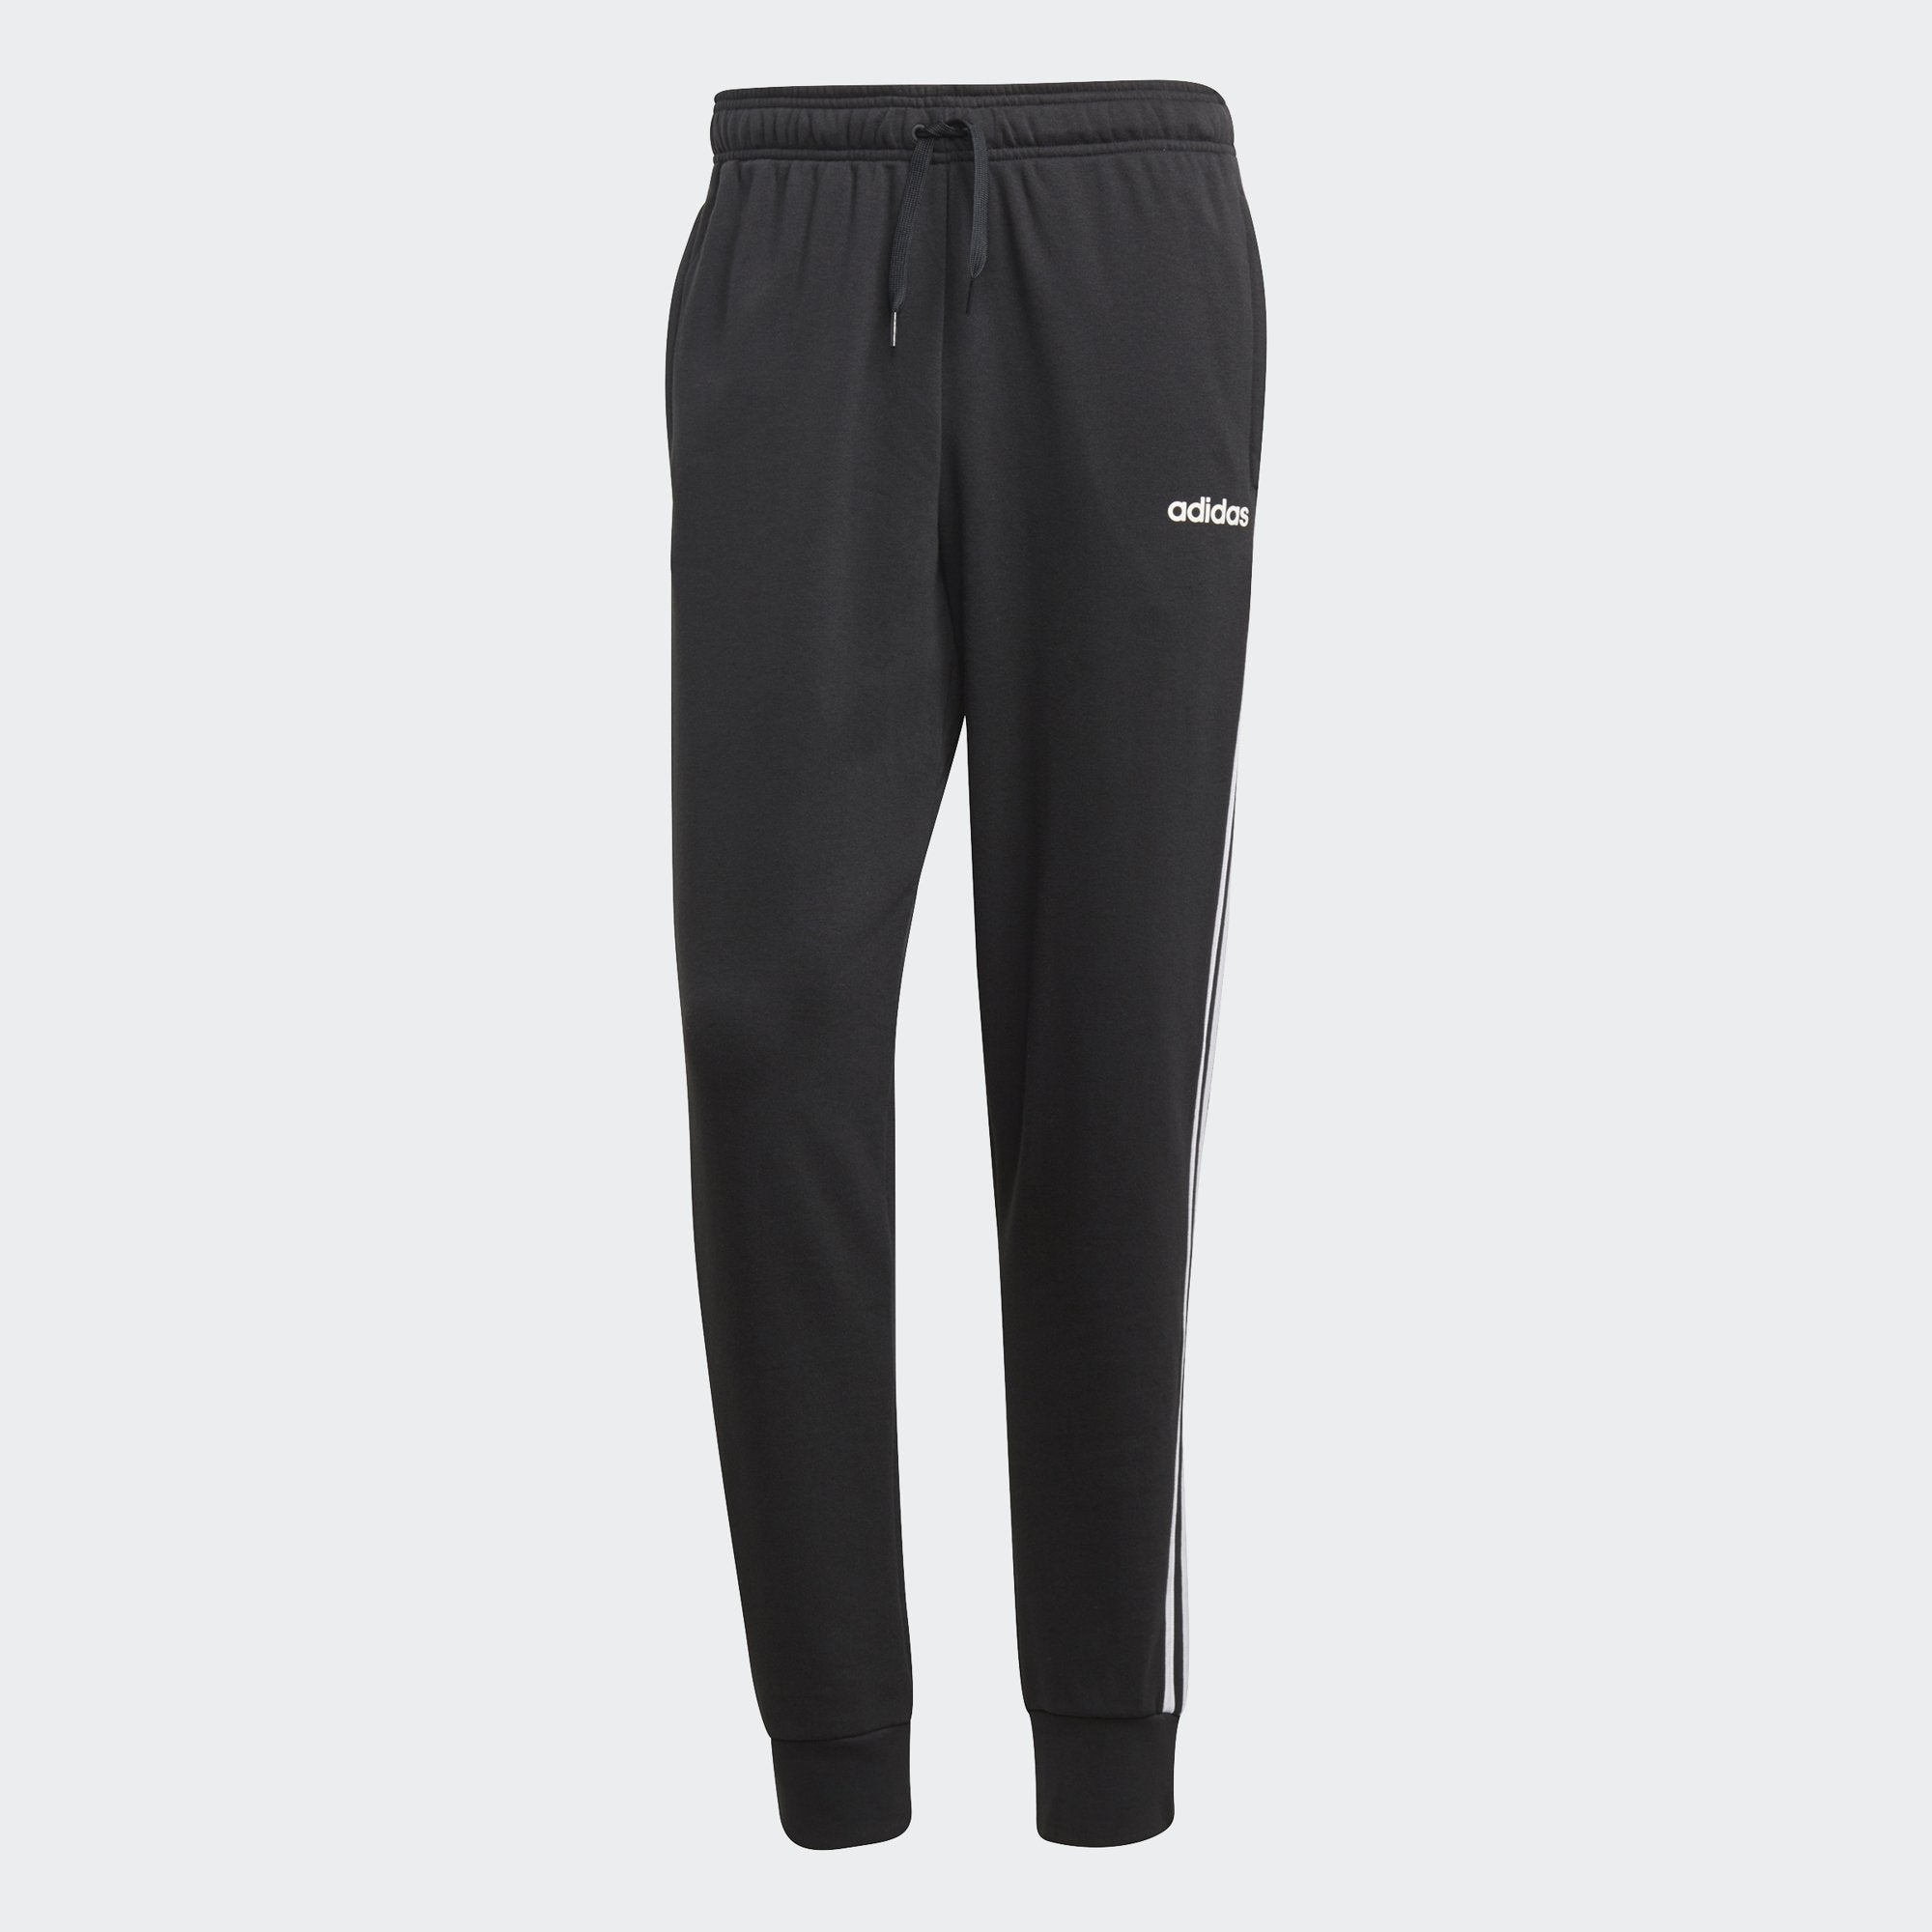 Adidas Mens Essentials 3-Stripes Tapered Cuffed Pants - black-white Mens Apparel Adidas